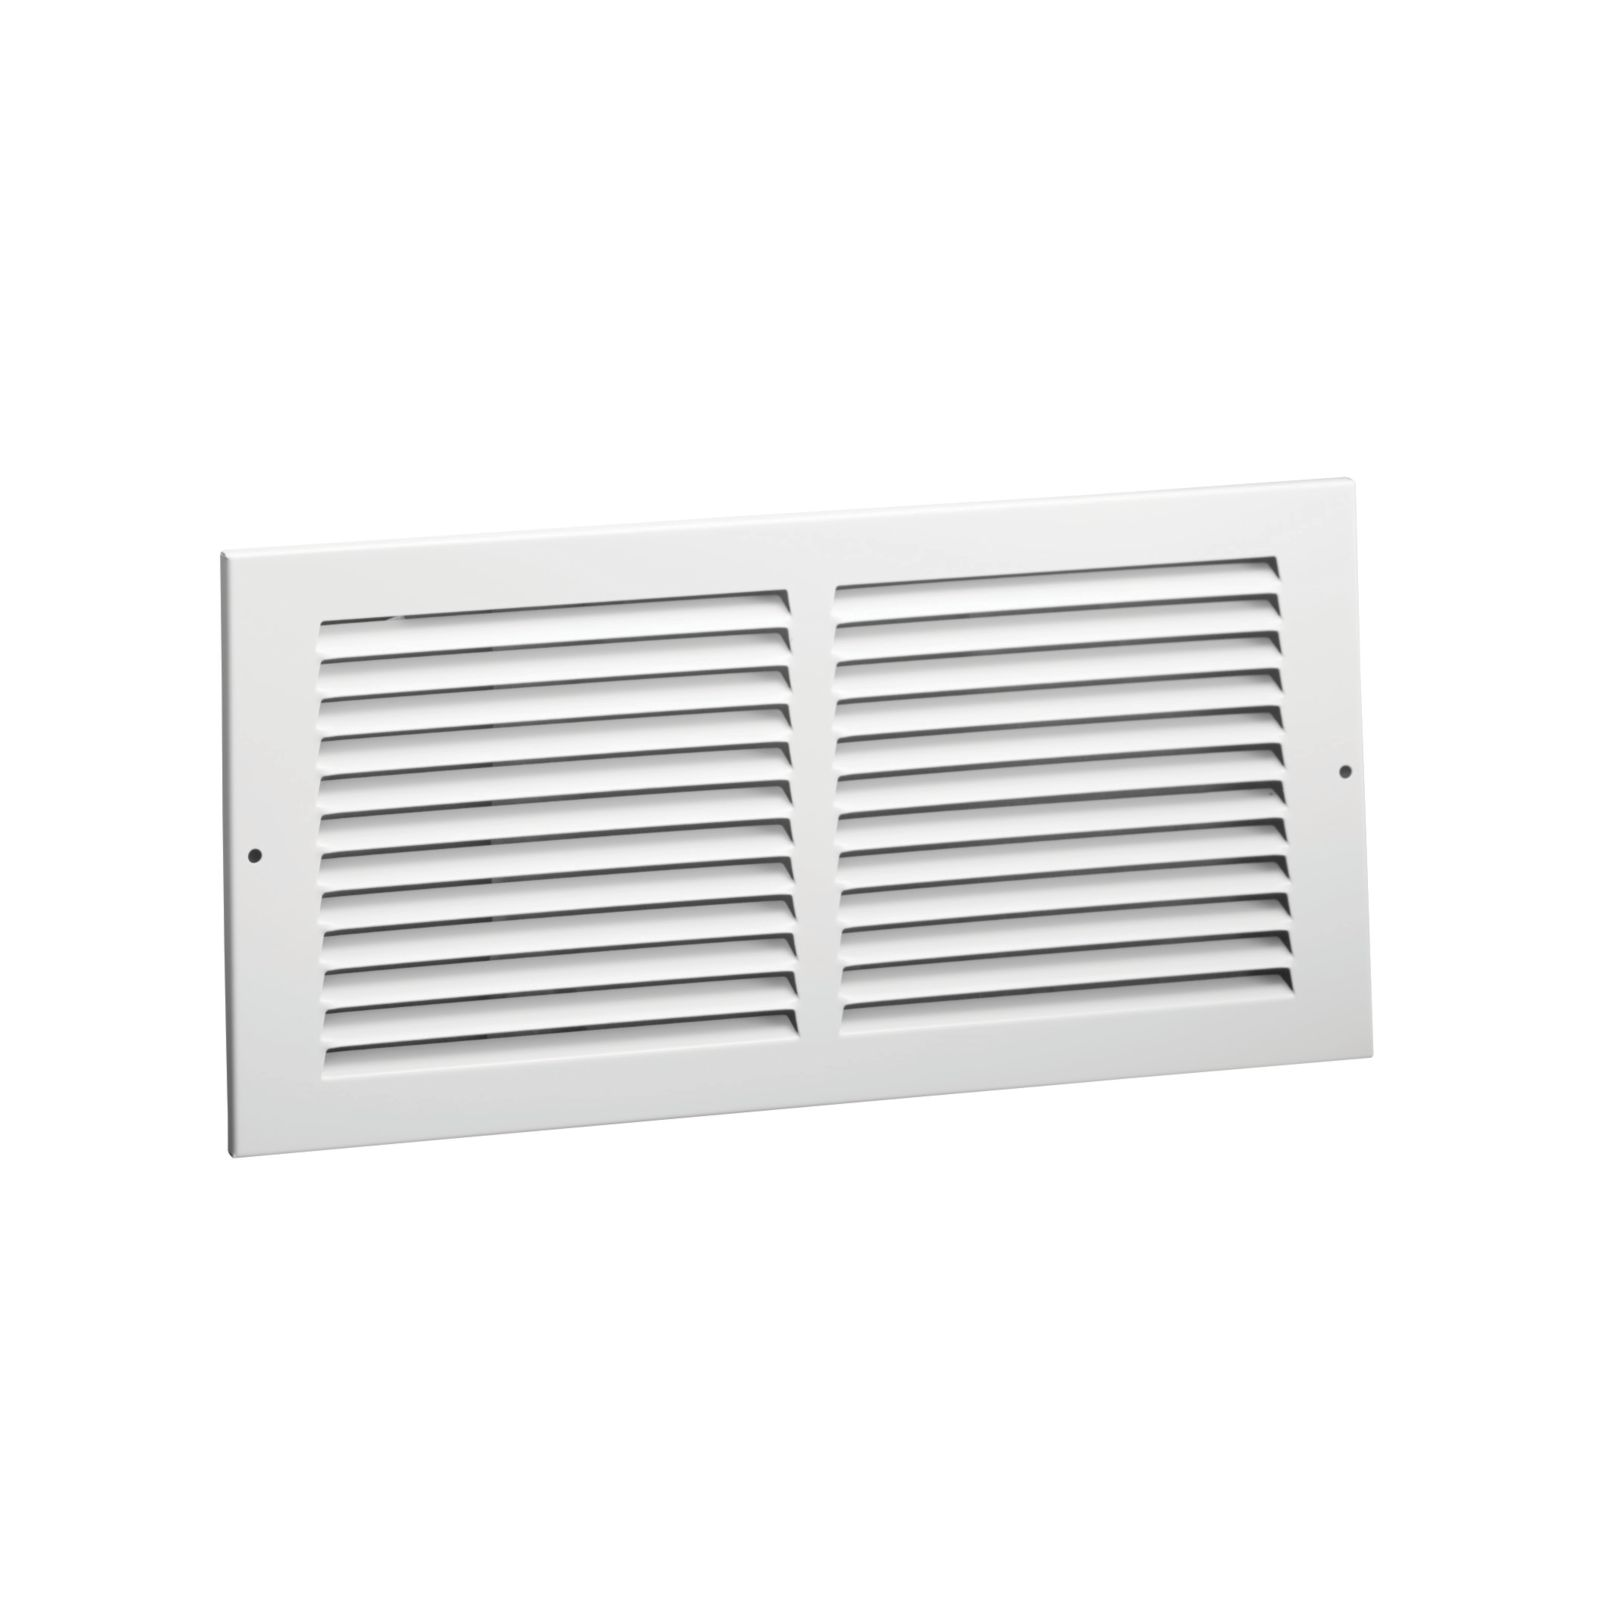 "Hart & Cooley 043381 - #672 Steel Return Air Grille, White Finish, 30"" X 30"""